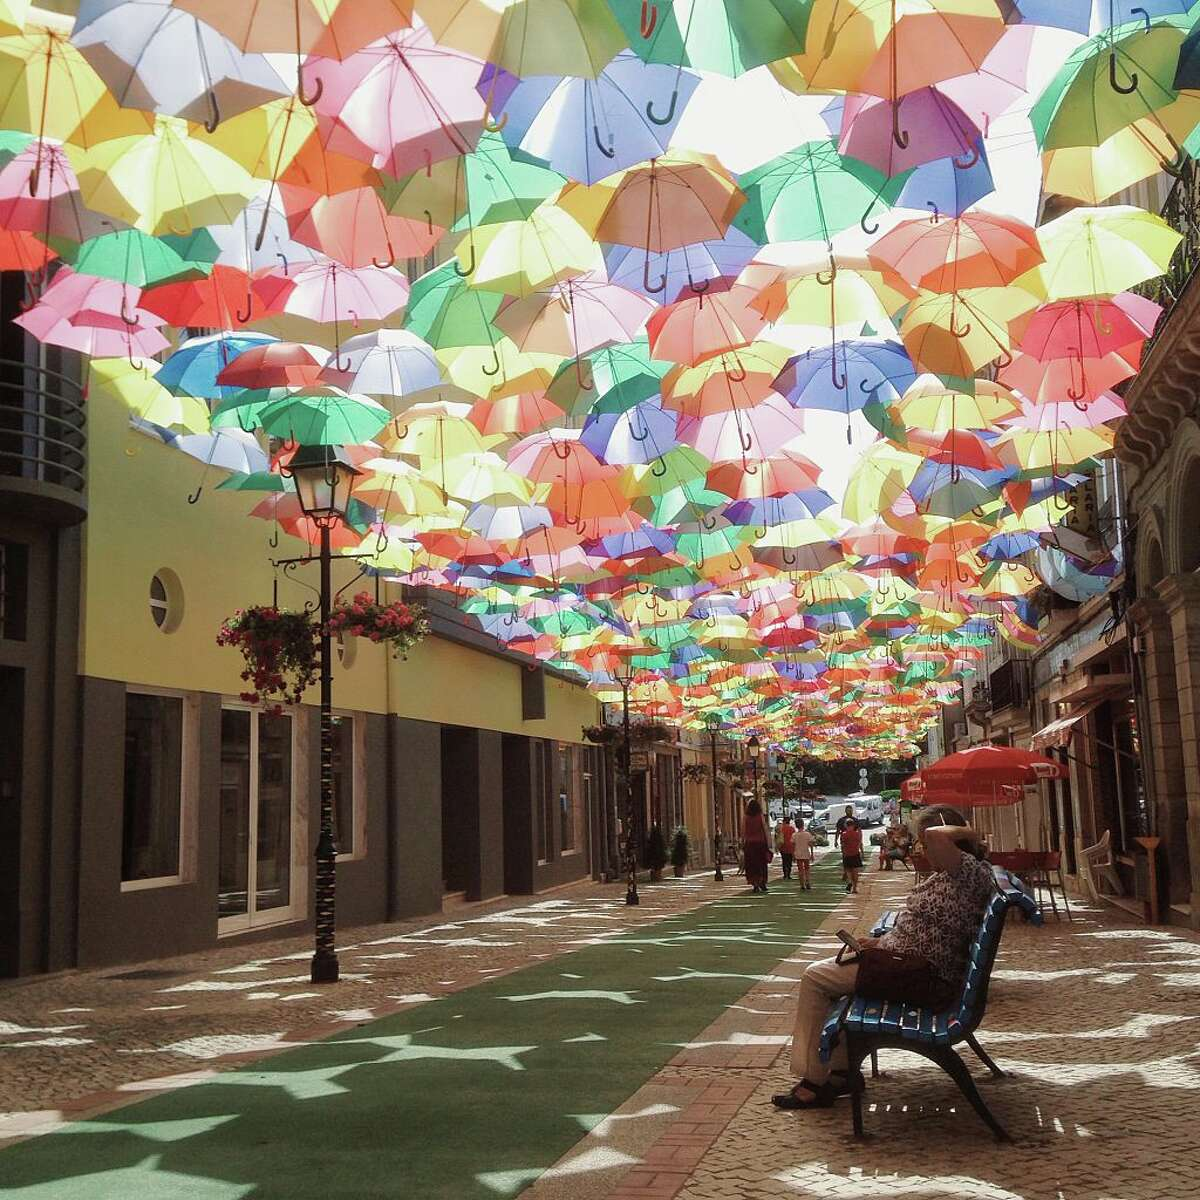 Umbrella Sky Project installation over a street of Agueda in Aveiro, Portugal. (Photo: Francisco Goncalves / Contributor)